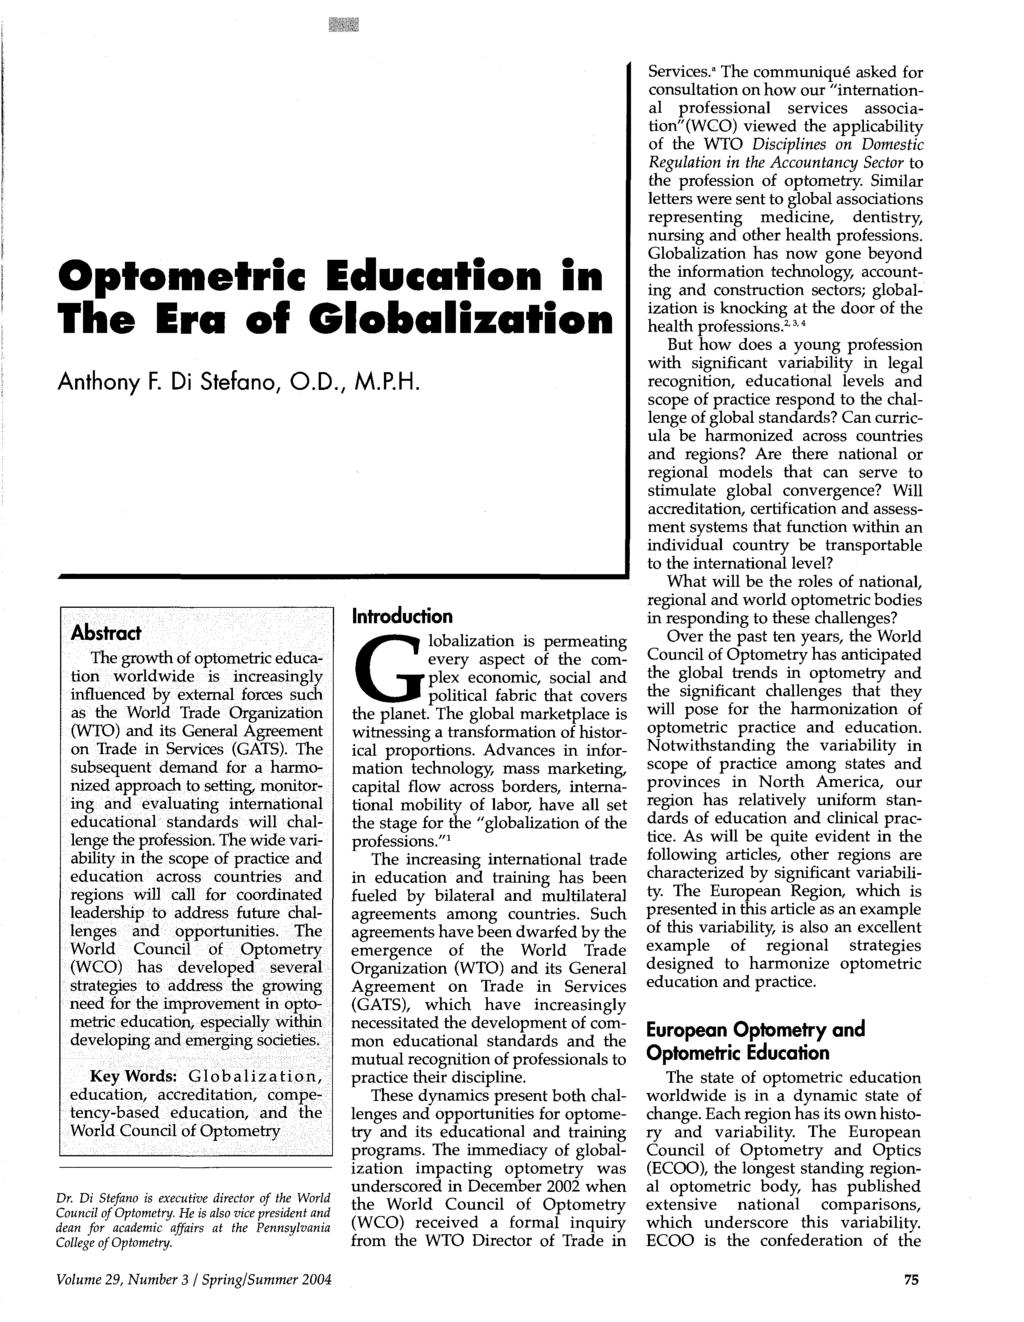 Optometric Education in The Era of Globalization Anthony F. Di Stefano, O.D., M.P.H.